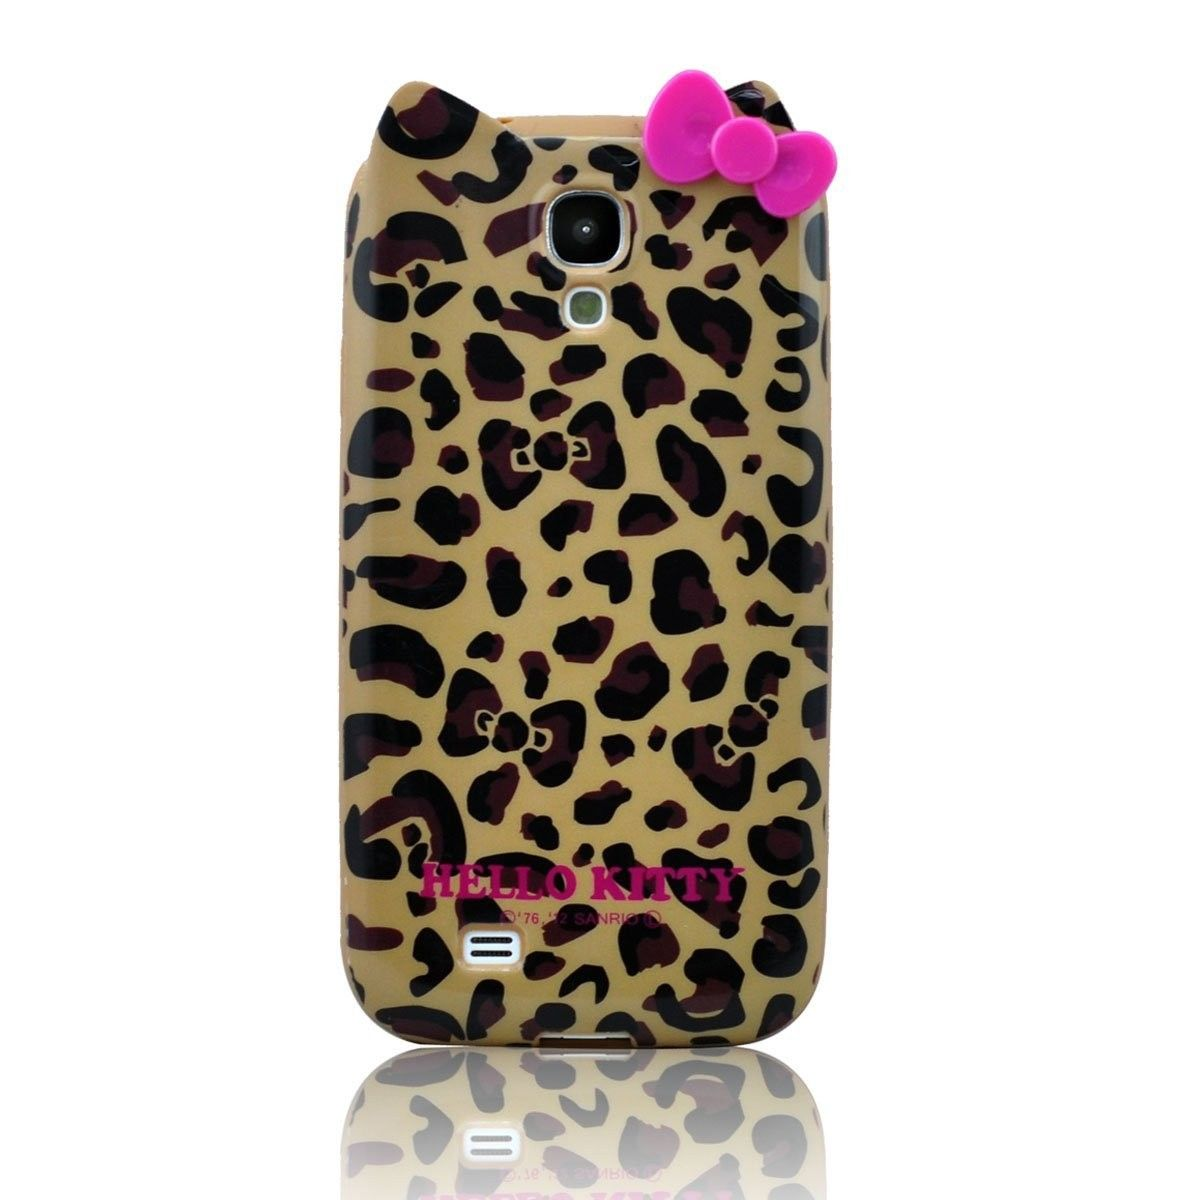 2019 year for lady- Galaxy stylish s3 covers